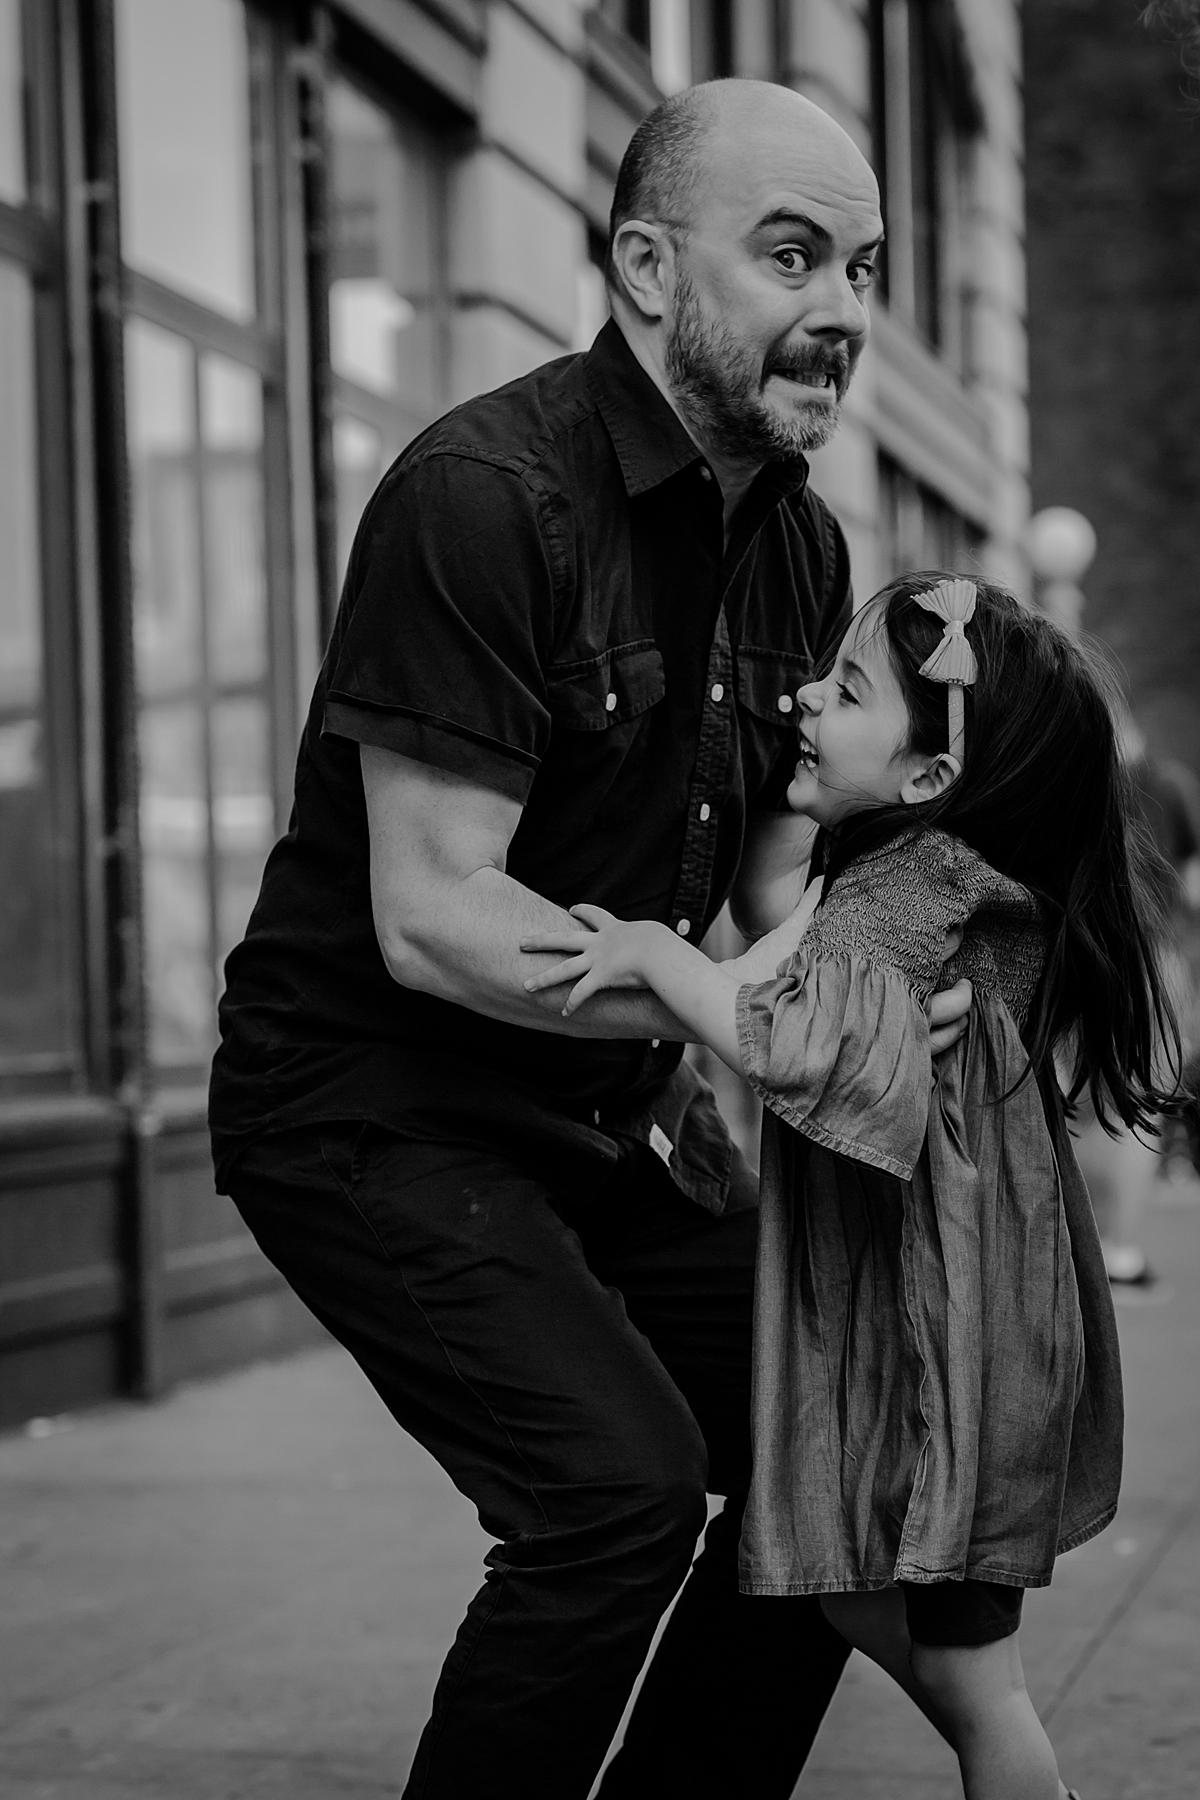 candid dad and daughter photo of dad pulling a funny face before he throws his daughter up in the air standing on dumbo brooklyn sidewalk. photo by nyc family and newborn photographer krystil mcdowall